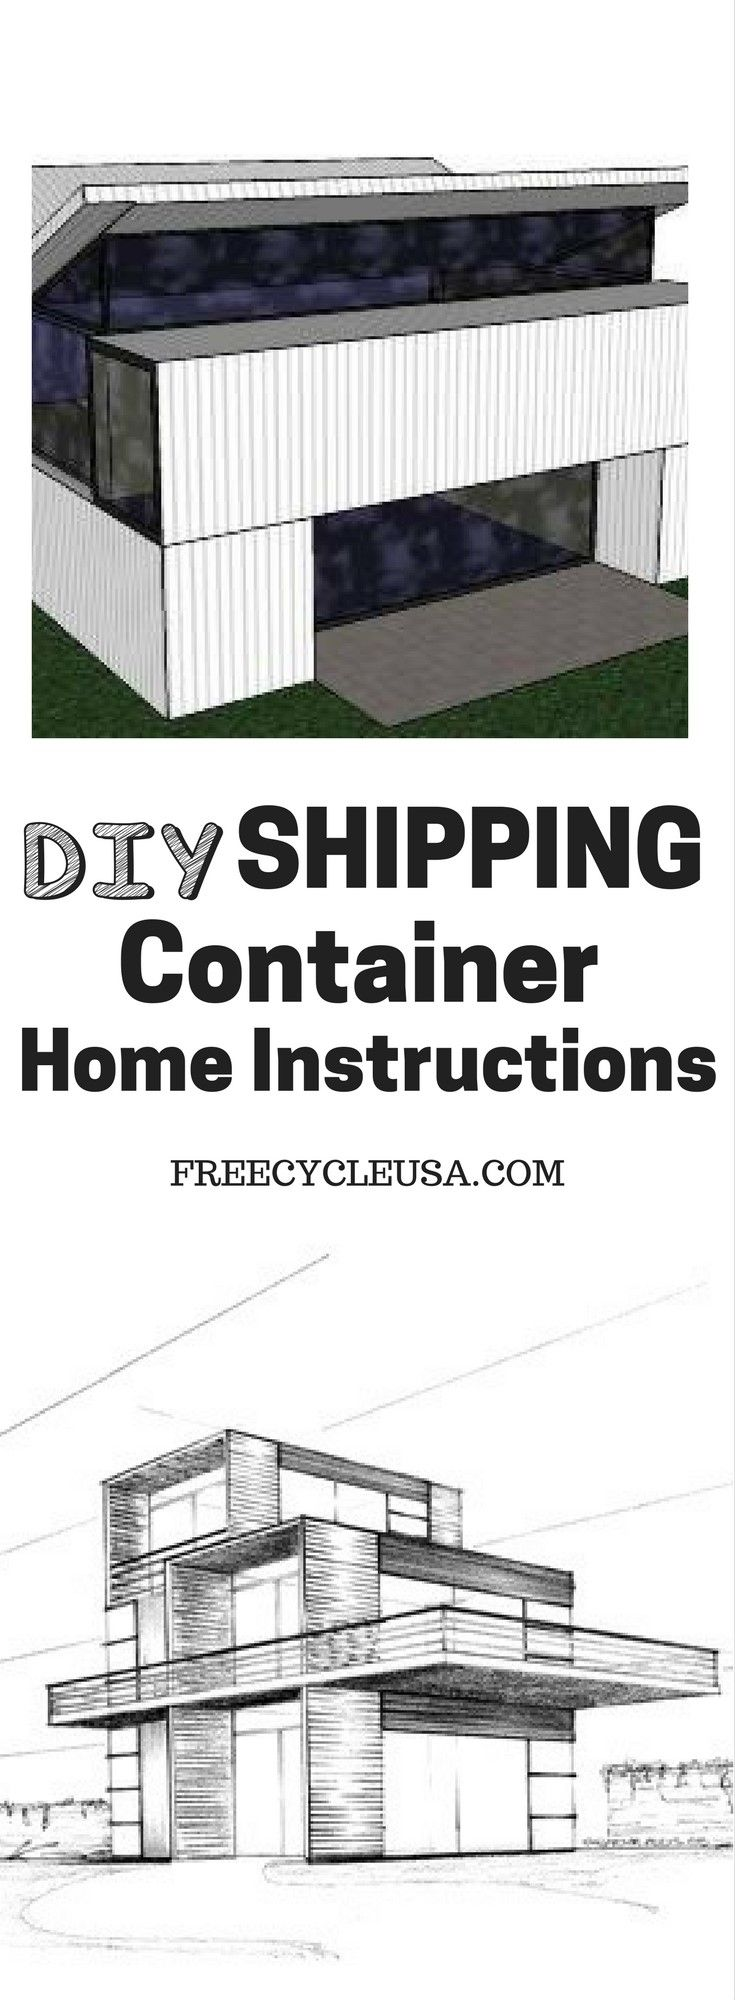 How to Build Amazing Shipping Container Homes | Ships, House and ...